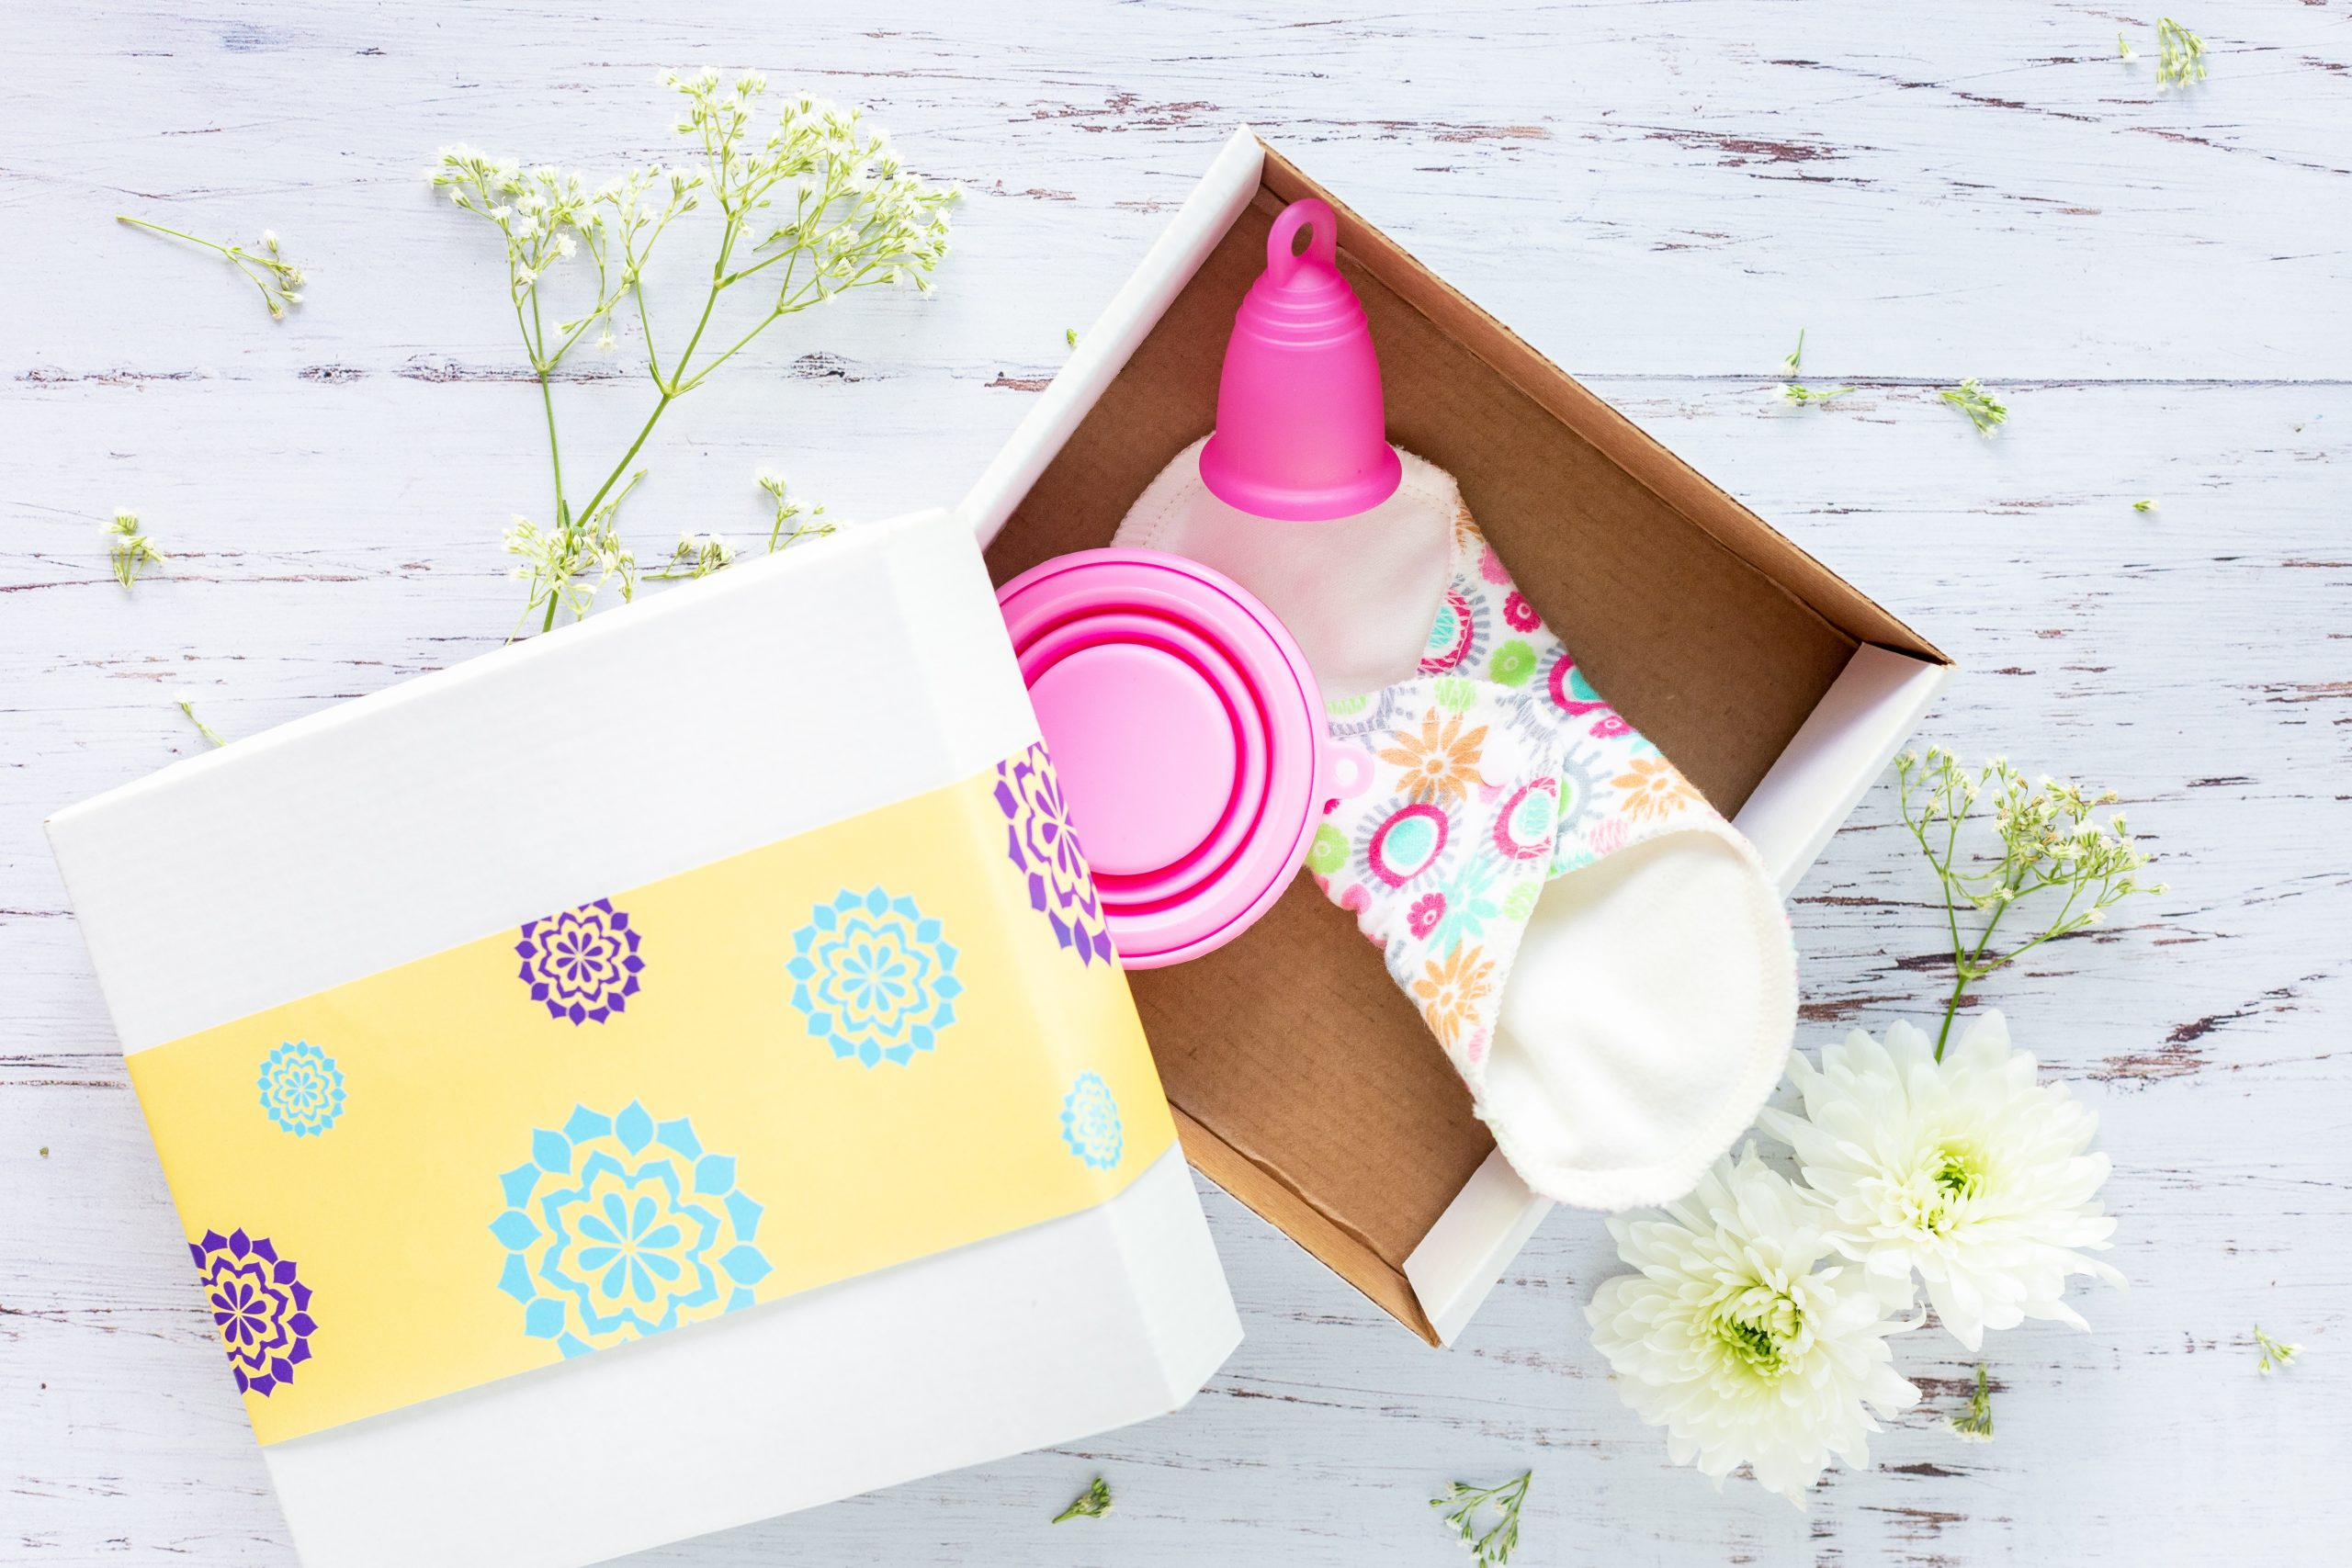 A white and yellow box sits on a white table, containing a pink mentrual cup, a reusable sanitary pad and a small pink pot